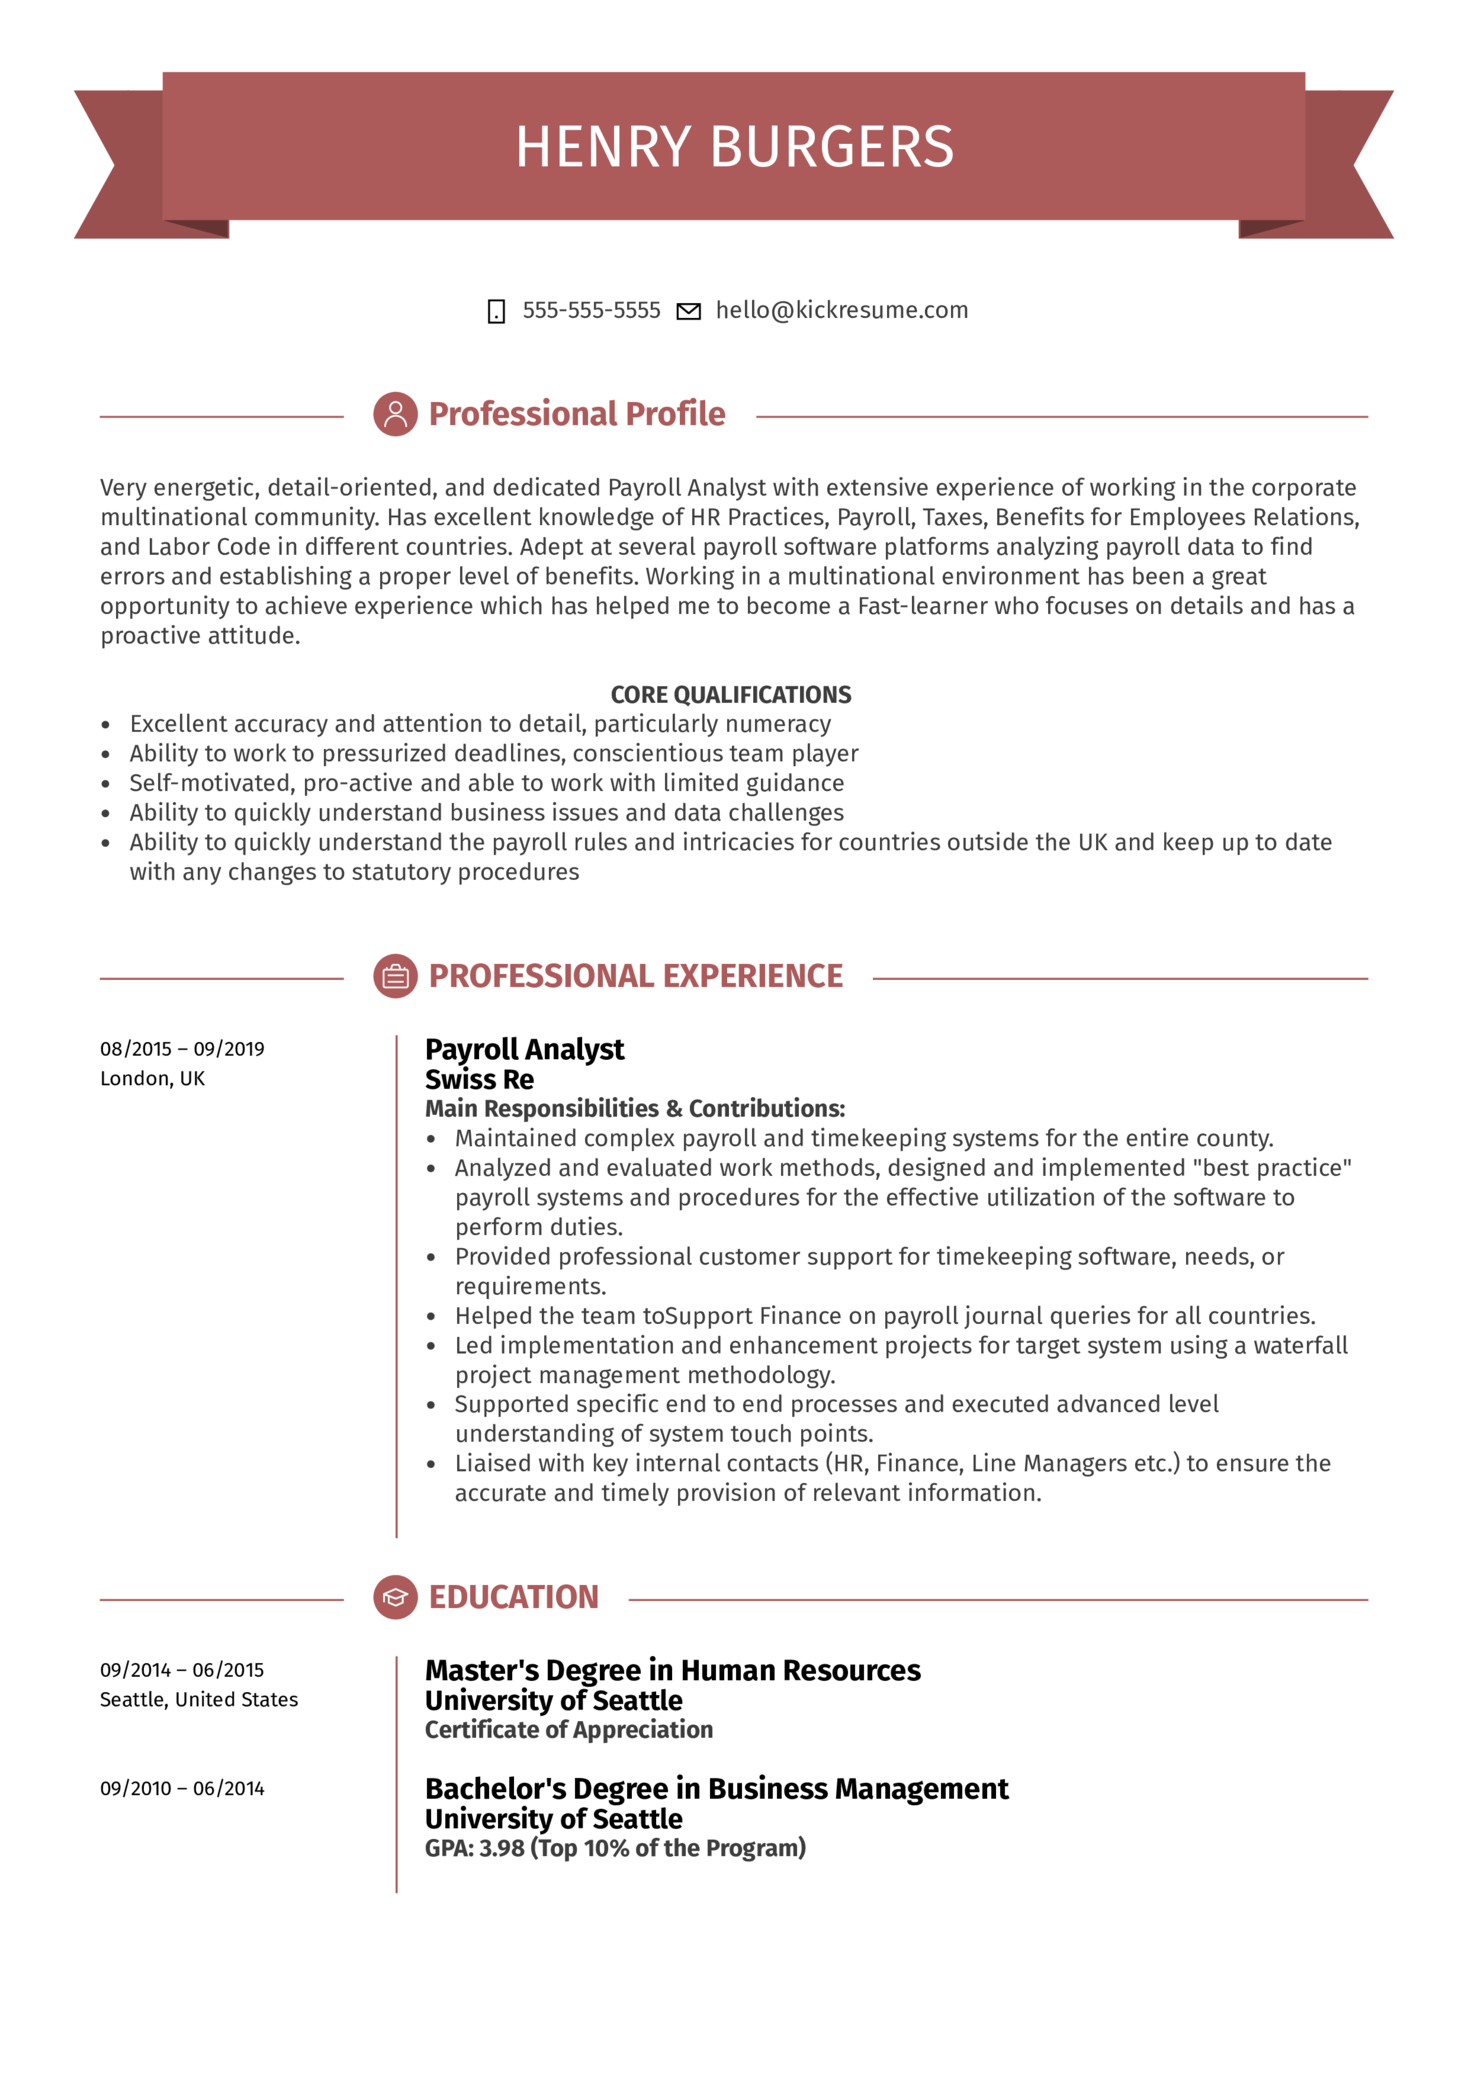 Payroll Analyst Resume Example (parte 1)